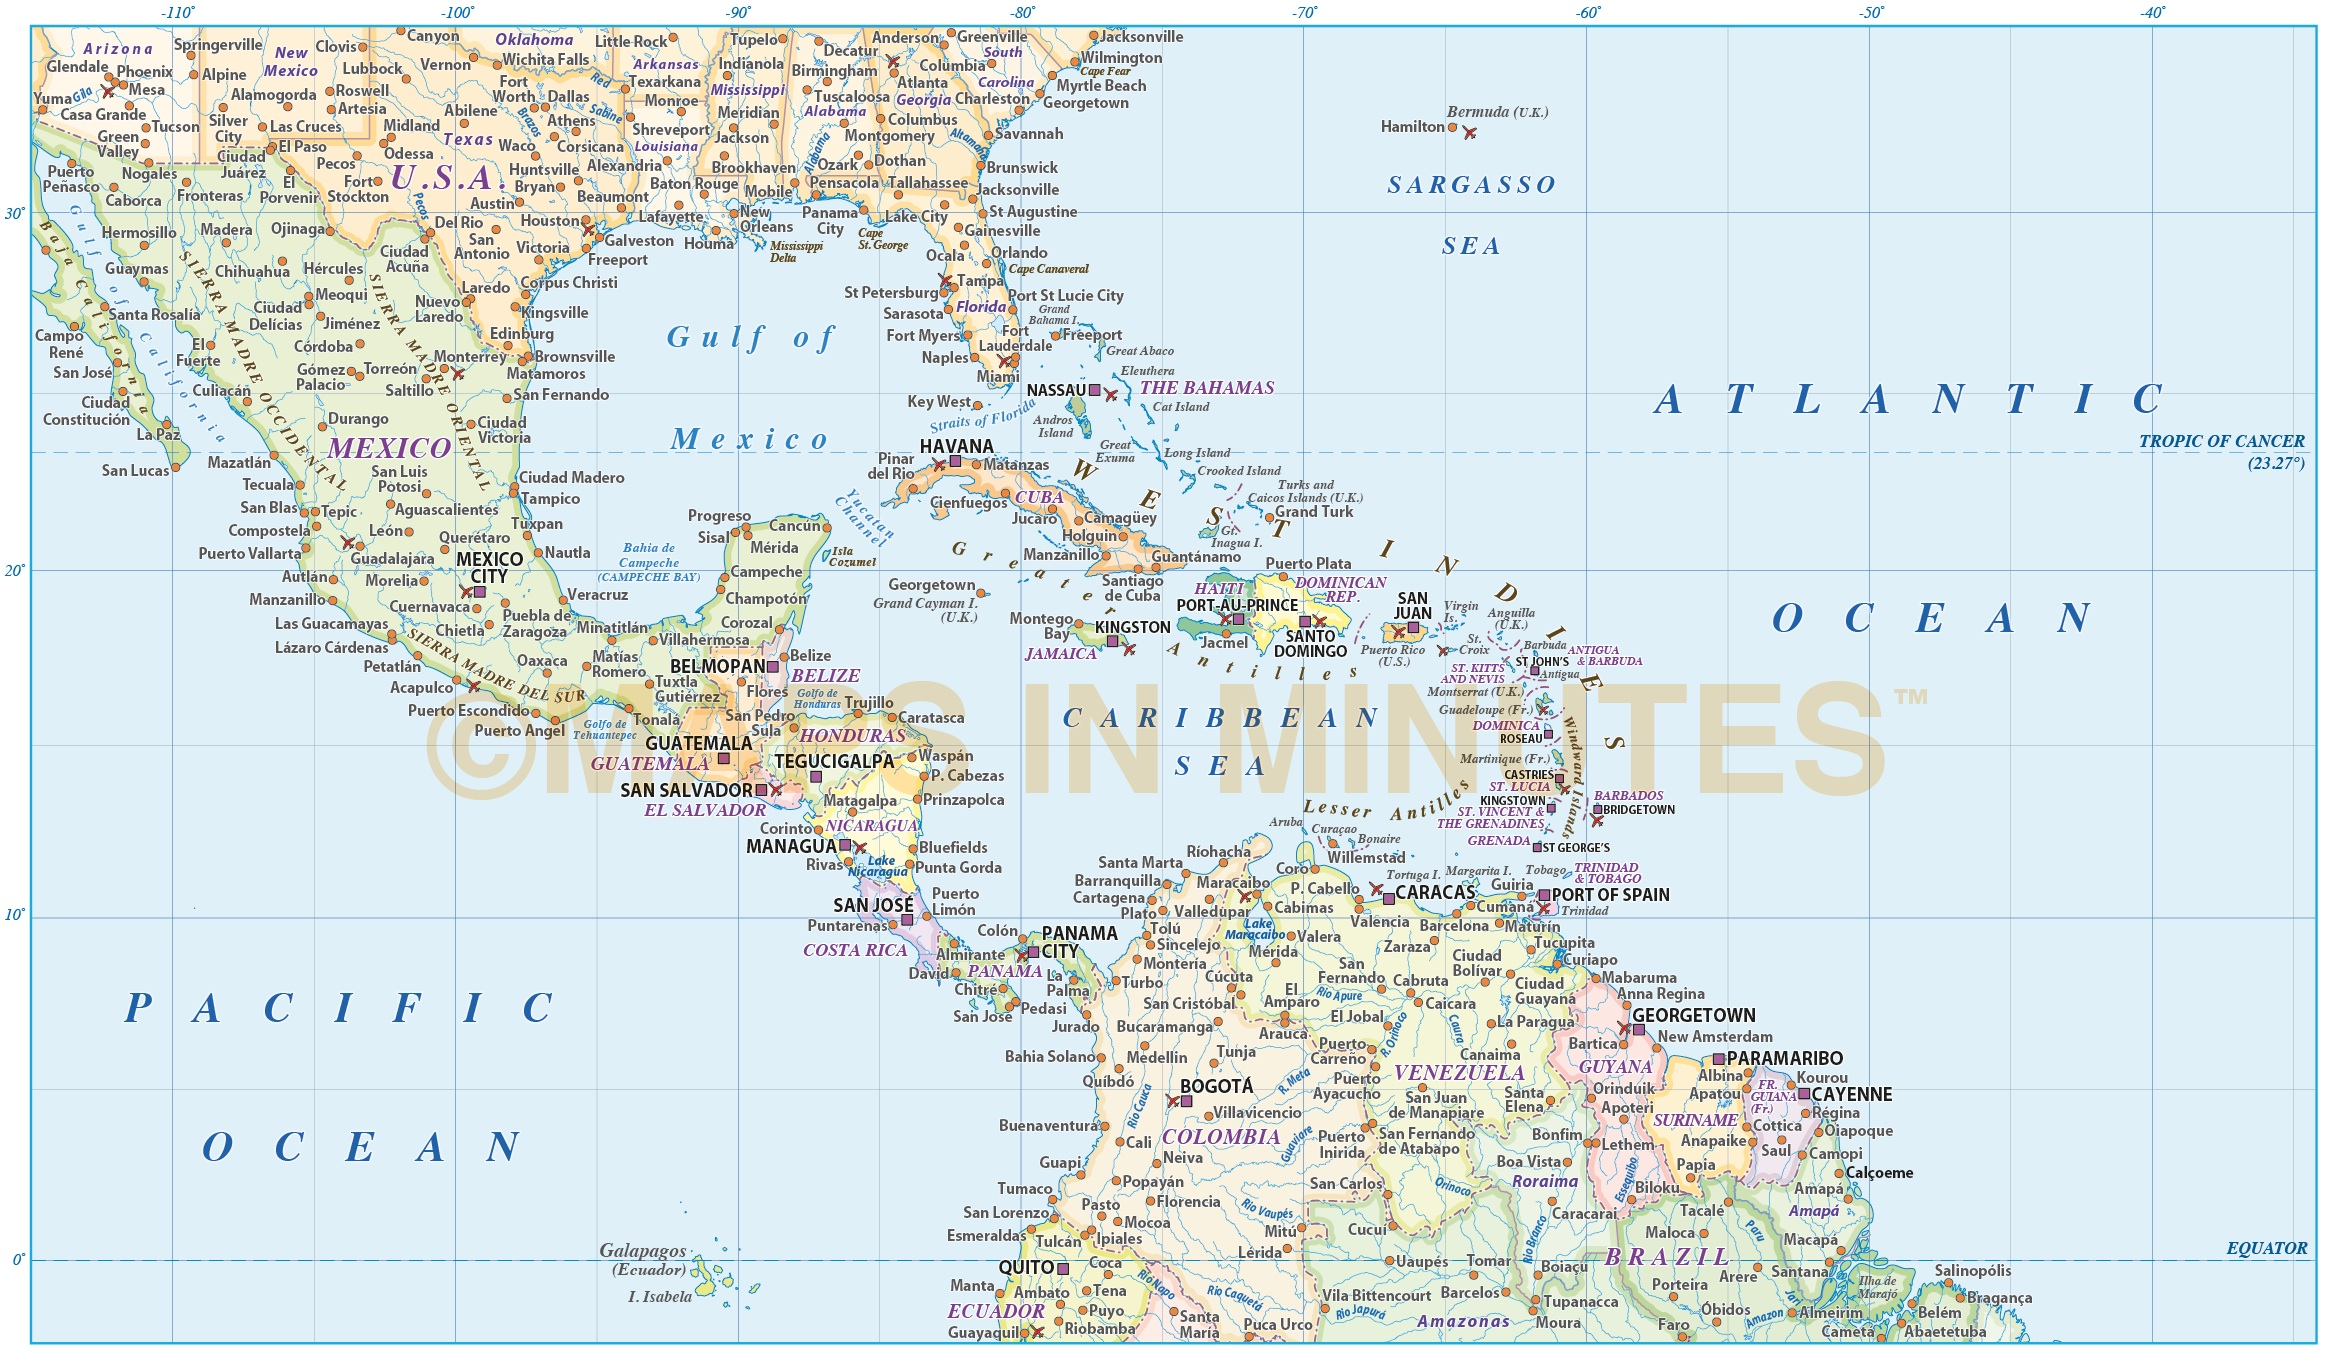 Central america vector map in illustrator and pdf format central america caribbean political map with insets and state fills for usa and brazil in gumiabroncs Gallery